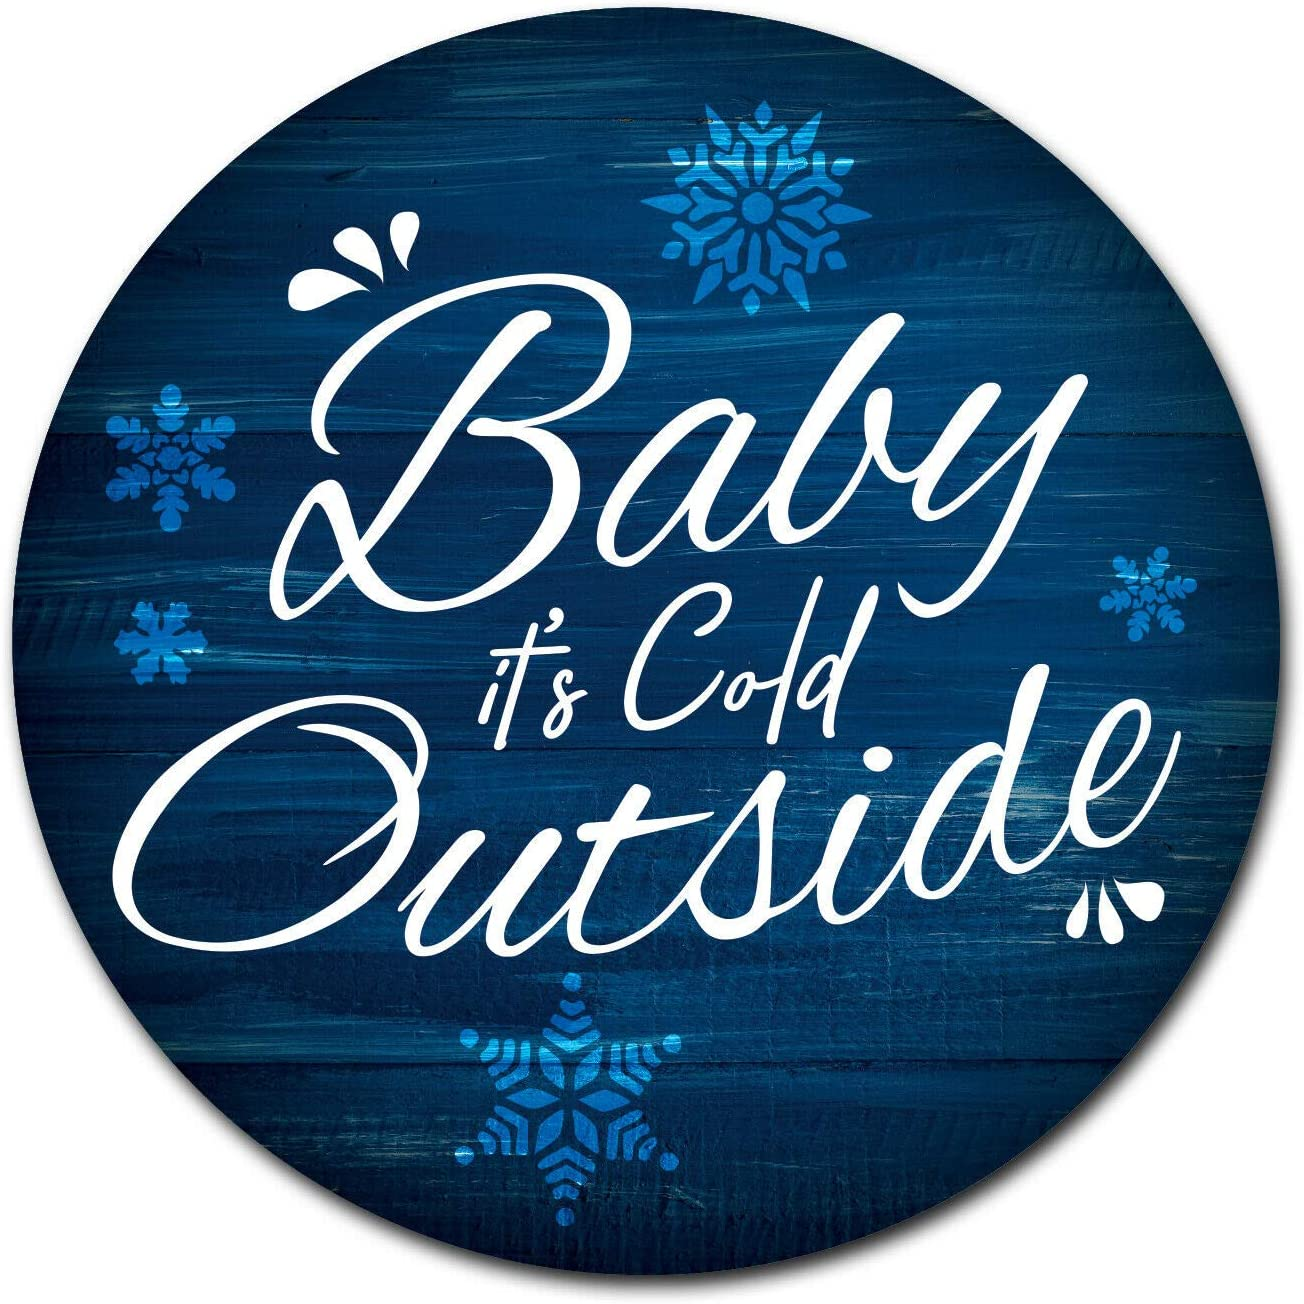 12'' X 12'' Round Baby It's Cold Outside Metal Tin Sign Nostalgic Retro Decor Waterproof and Rustproof